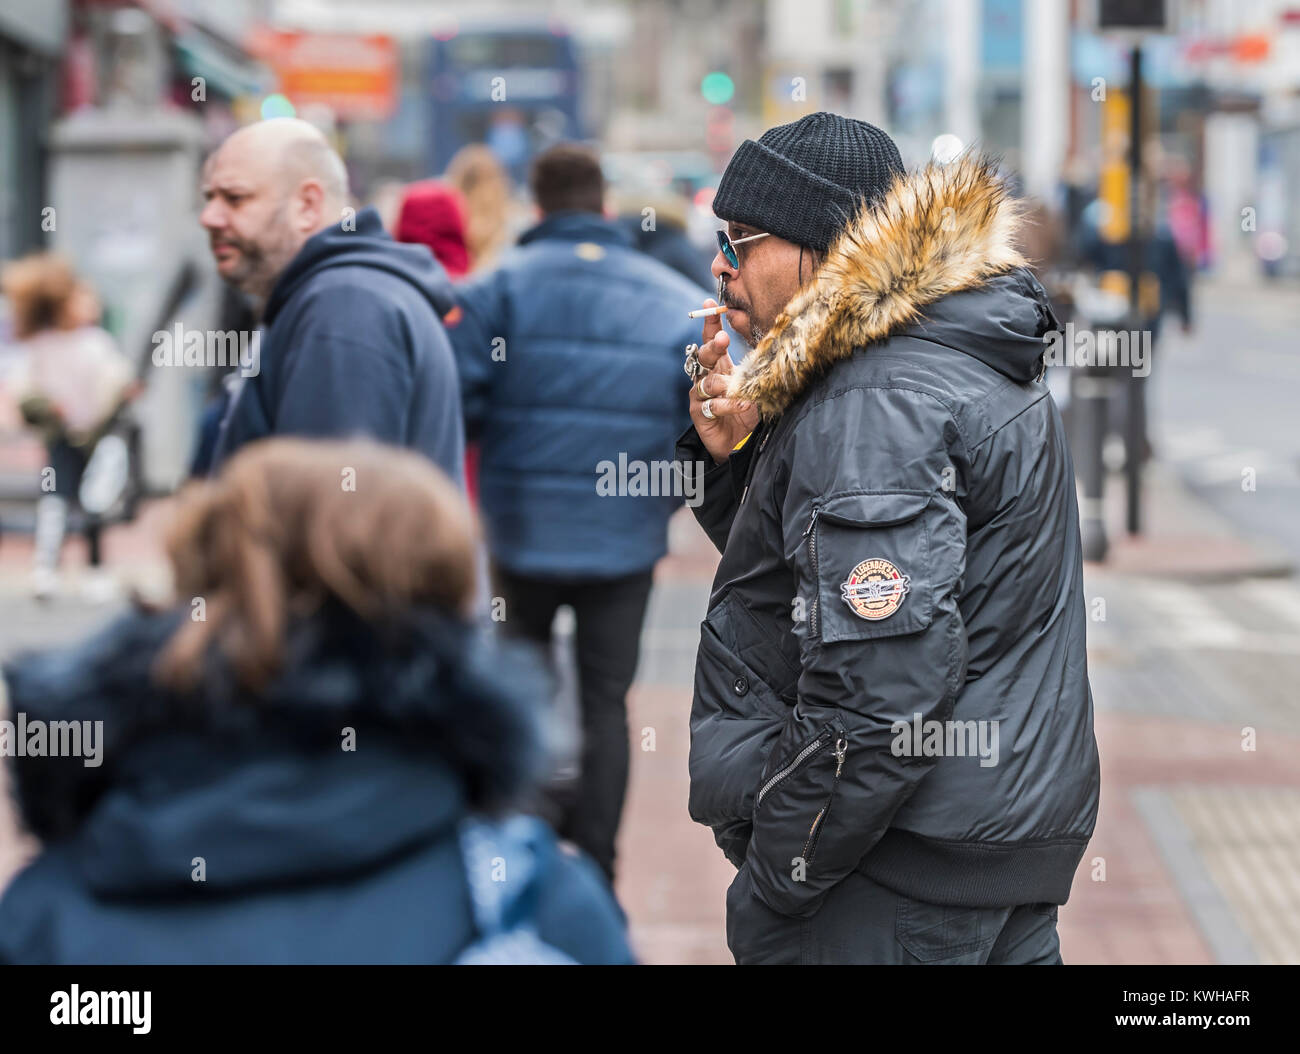 Black man dressed in Winter clothes smoking a cigarette in Winter in England, UK. - Stock Image